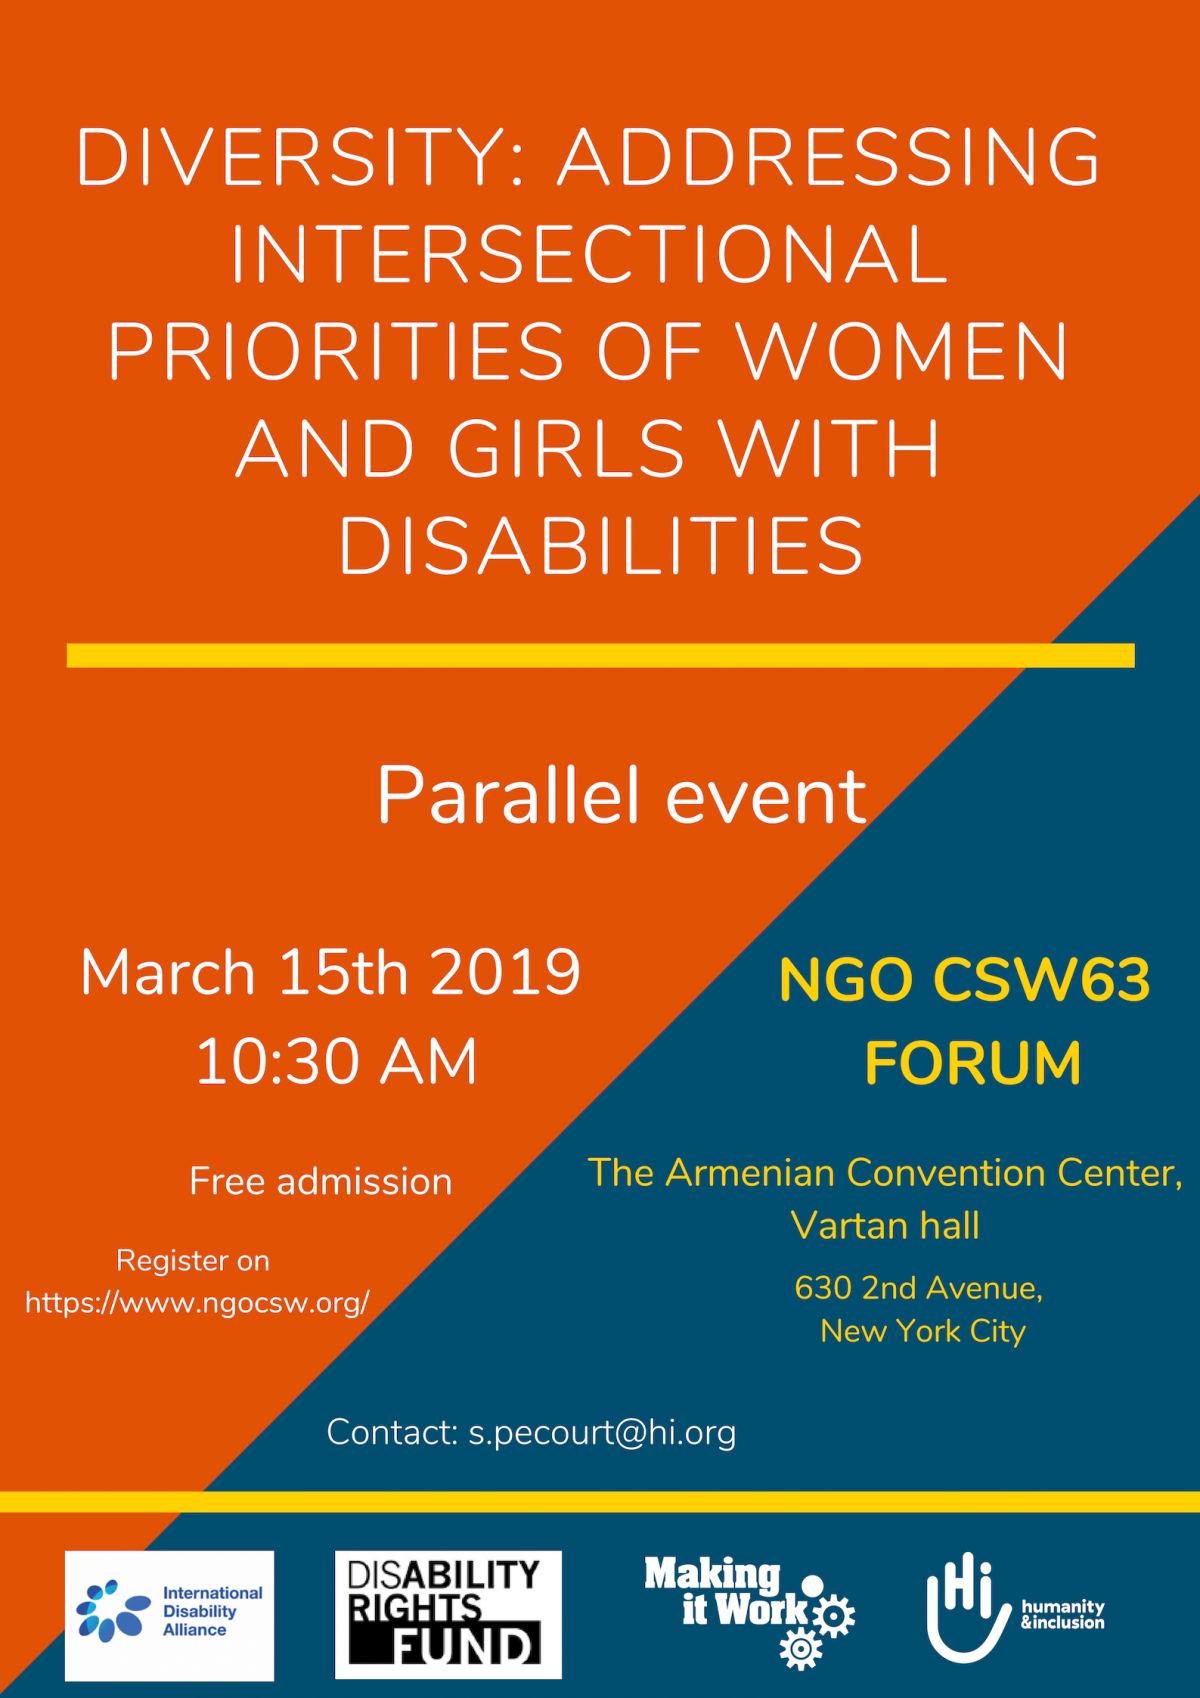 Poster for the CSW63 parallel event of IDA, DRF, Making It Work and HI. The title of the event is Diversity: addressing intersectional priorities of women and girls with disabilities. The date is March 15th 2019, 10:30 am at the Armenian Convention Center, Vartan hall, on 630 second avenue, New York city. The contact person is s.pecourt@hi.org. The text is on an orange and blue poster with yellow highlights.